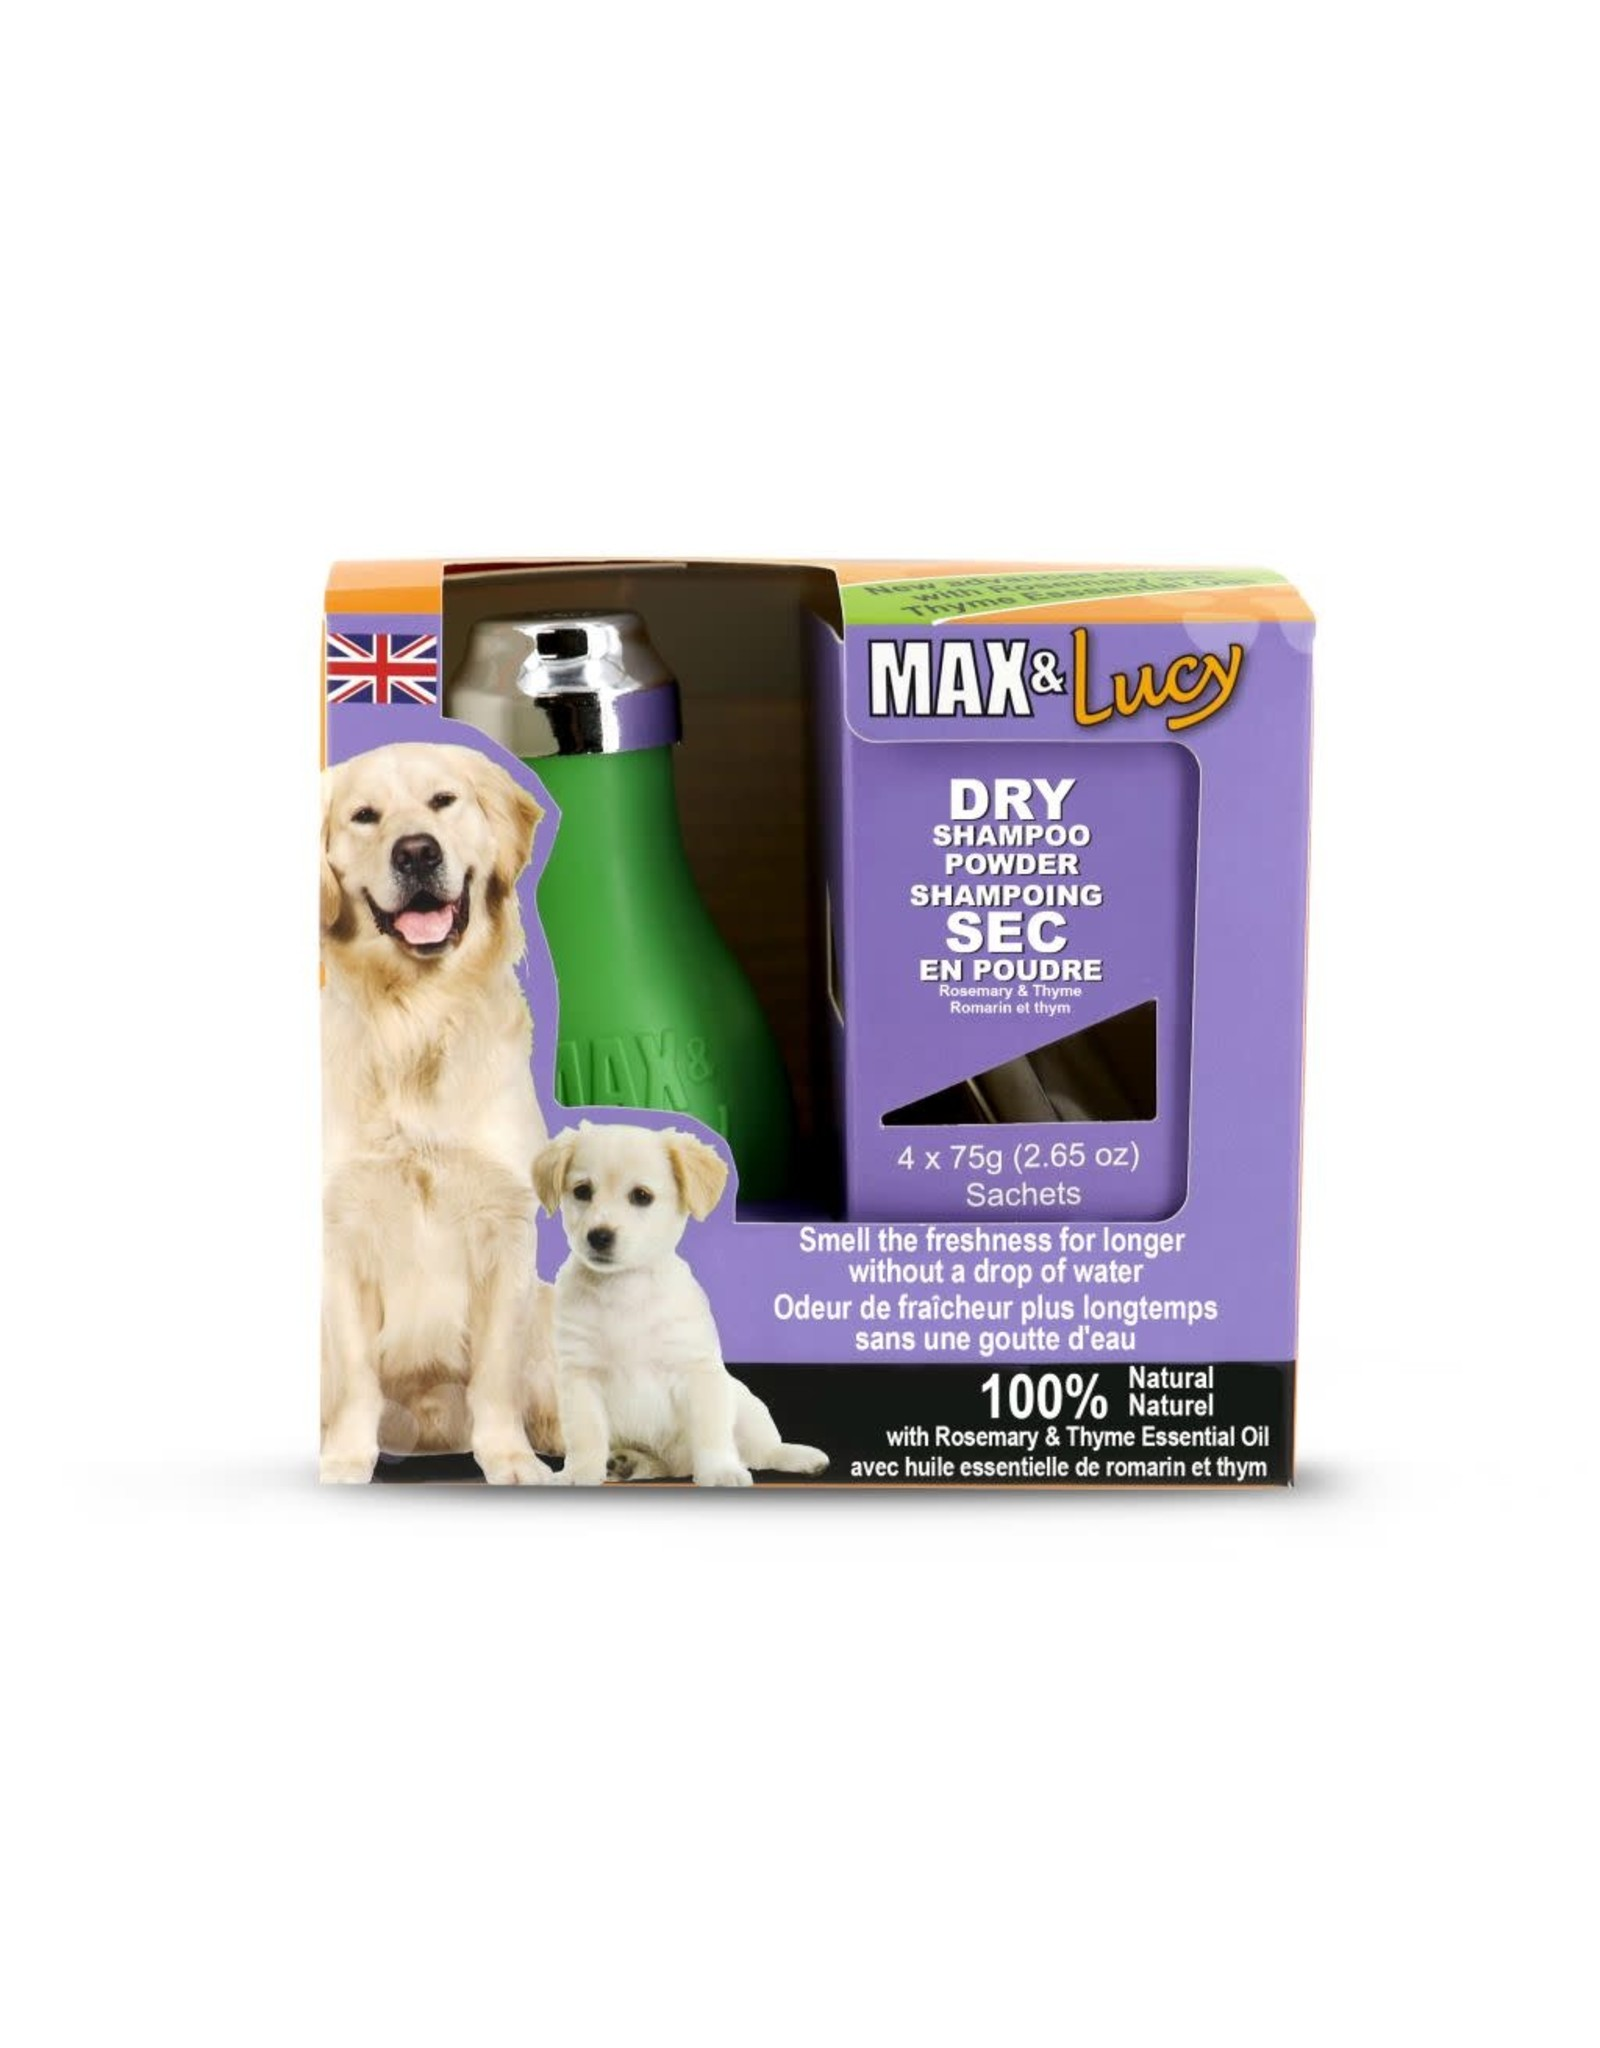 Max & Lucy Max & Lucy Dry Dog Shampoo Bulb Rosemary & Thyme 4 x 75G Sachets